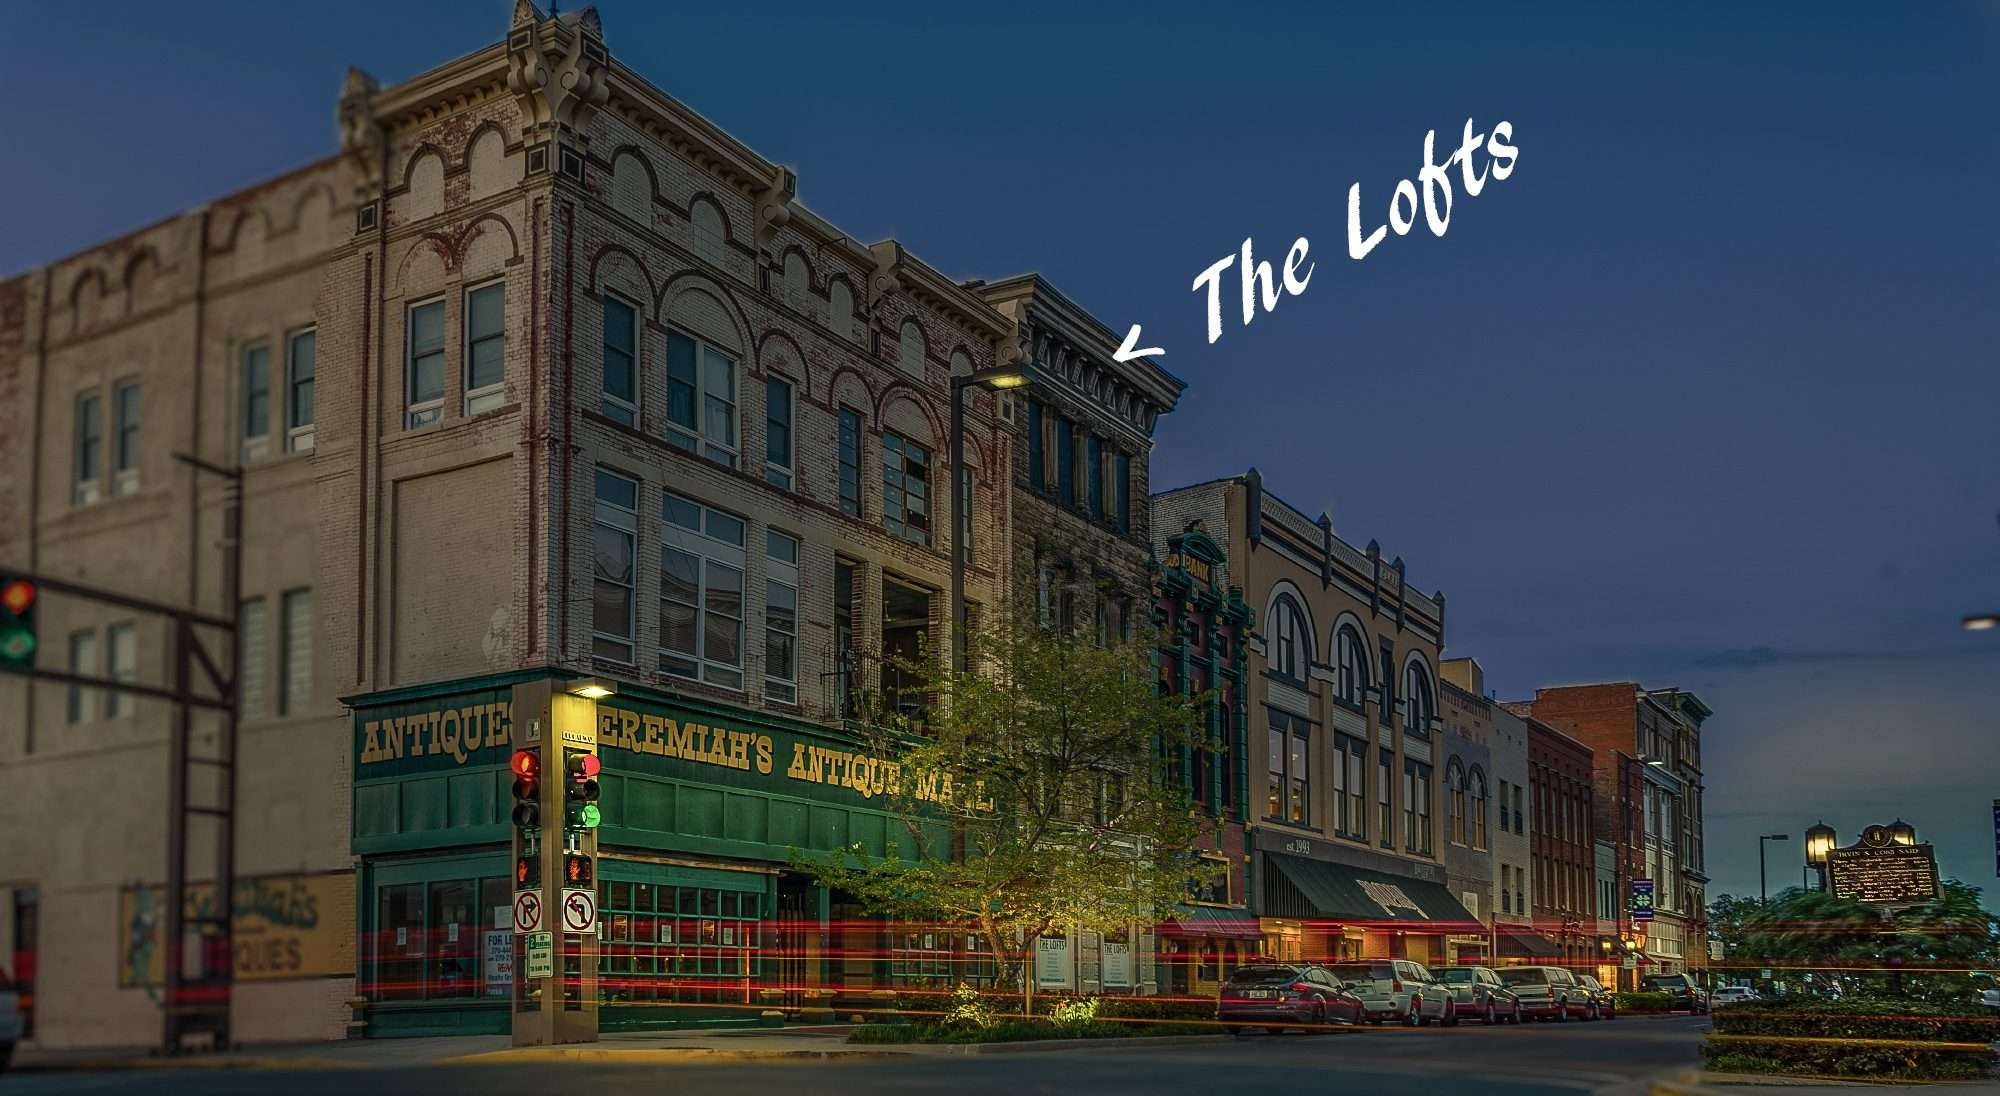 The Lofts Paducah Ky Coming Photo News 247